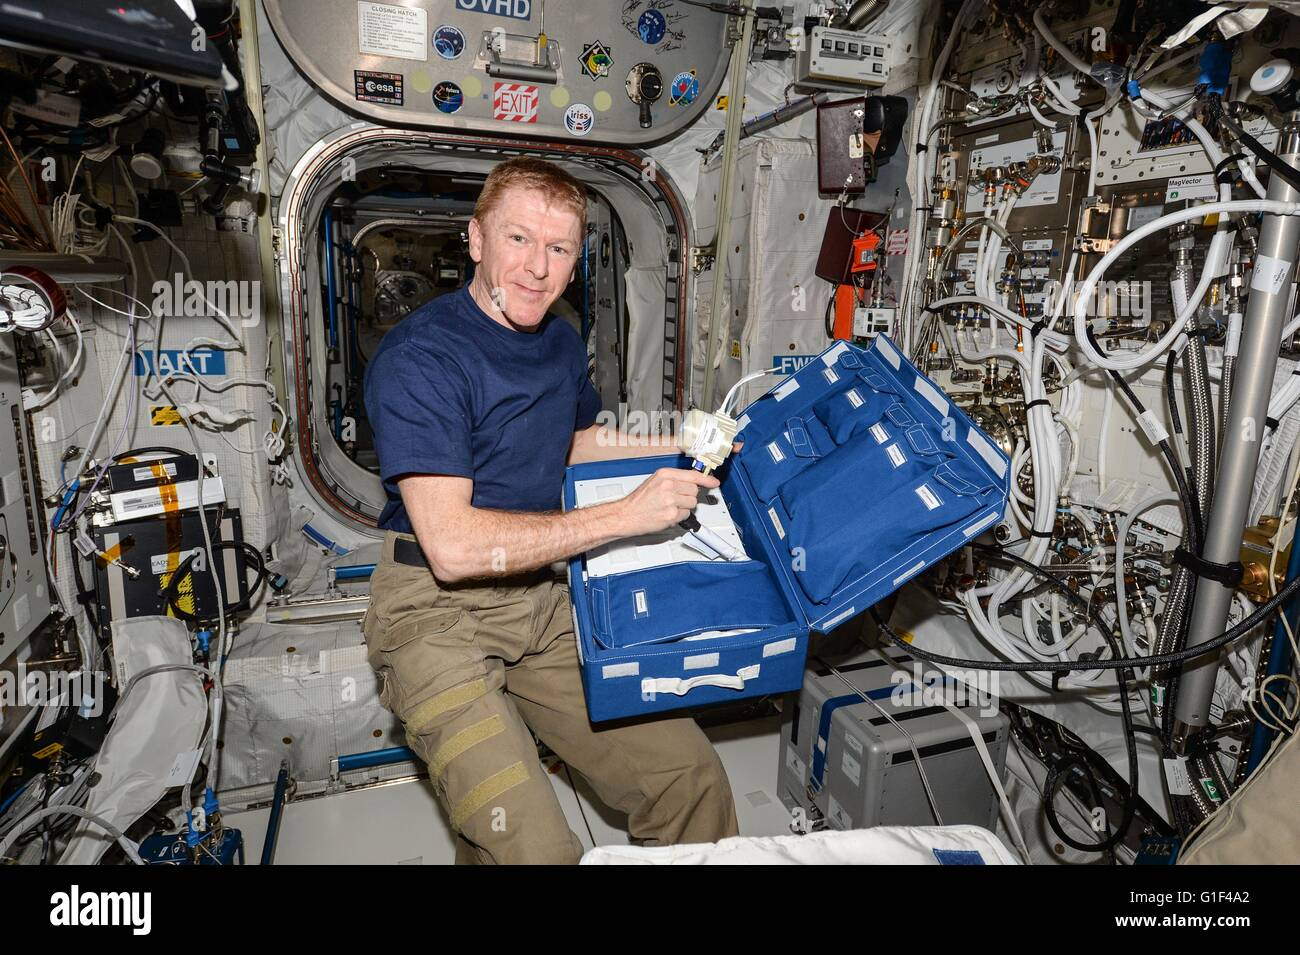 British astronaut Tim Peake with the European Space Agency unpacks a cerebral and cochlear fluid pressure analyzer - Stock Image